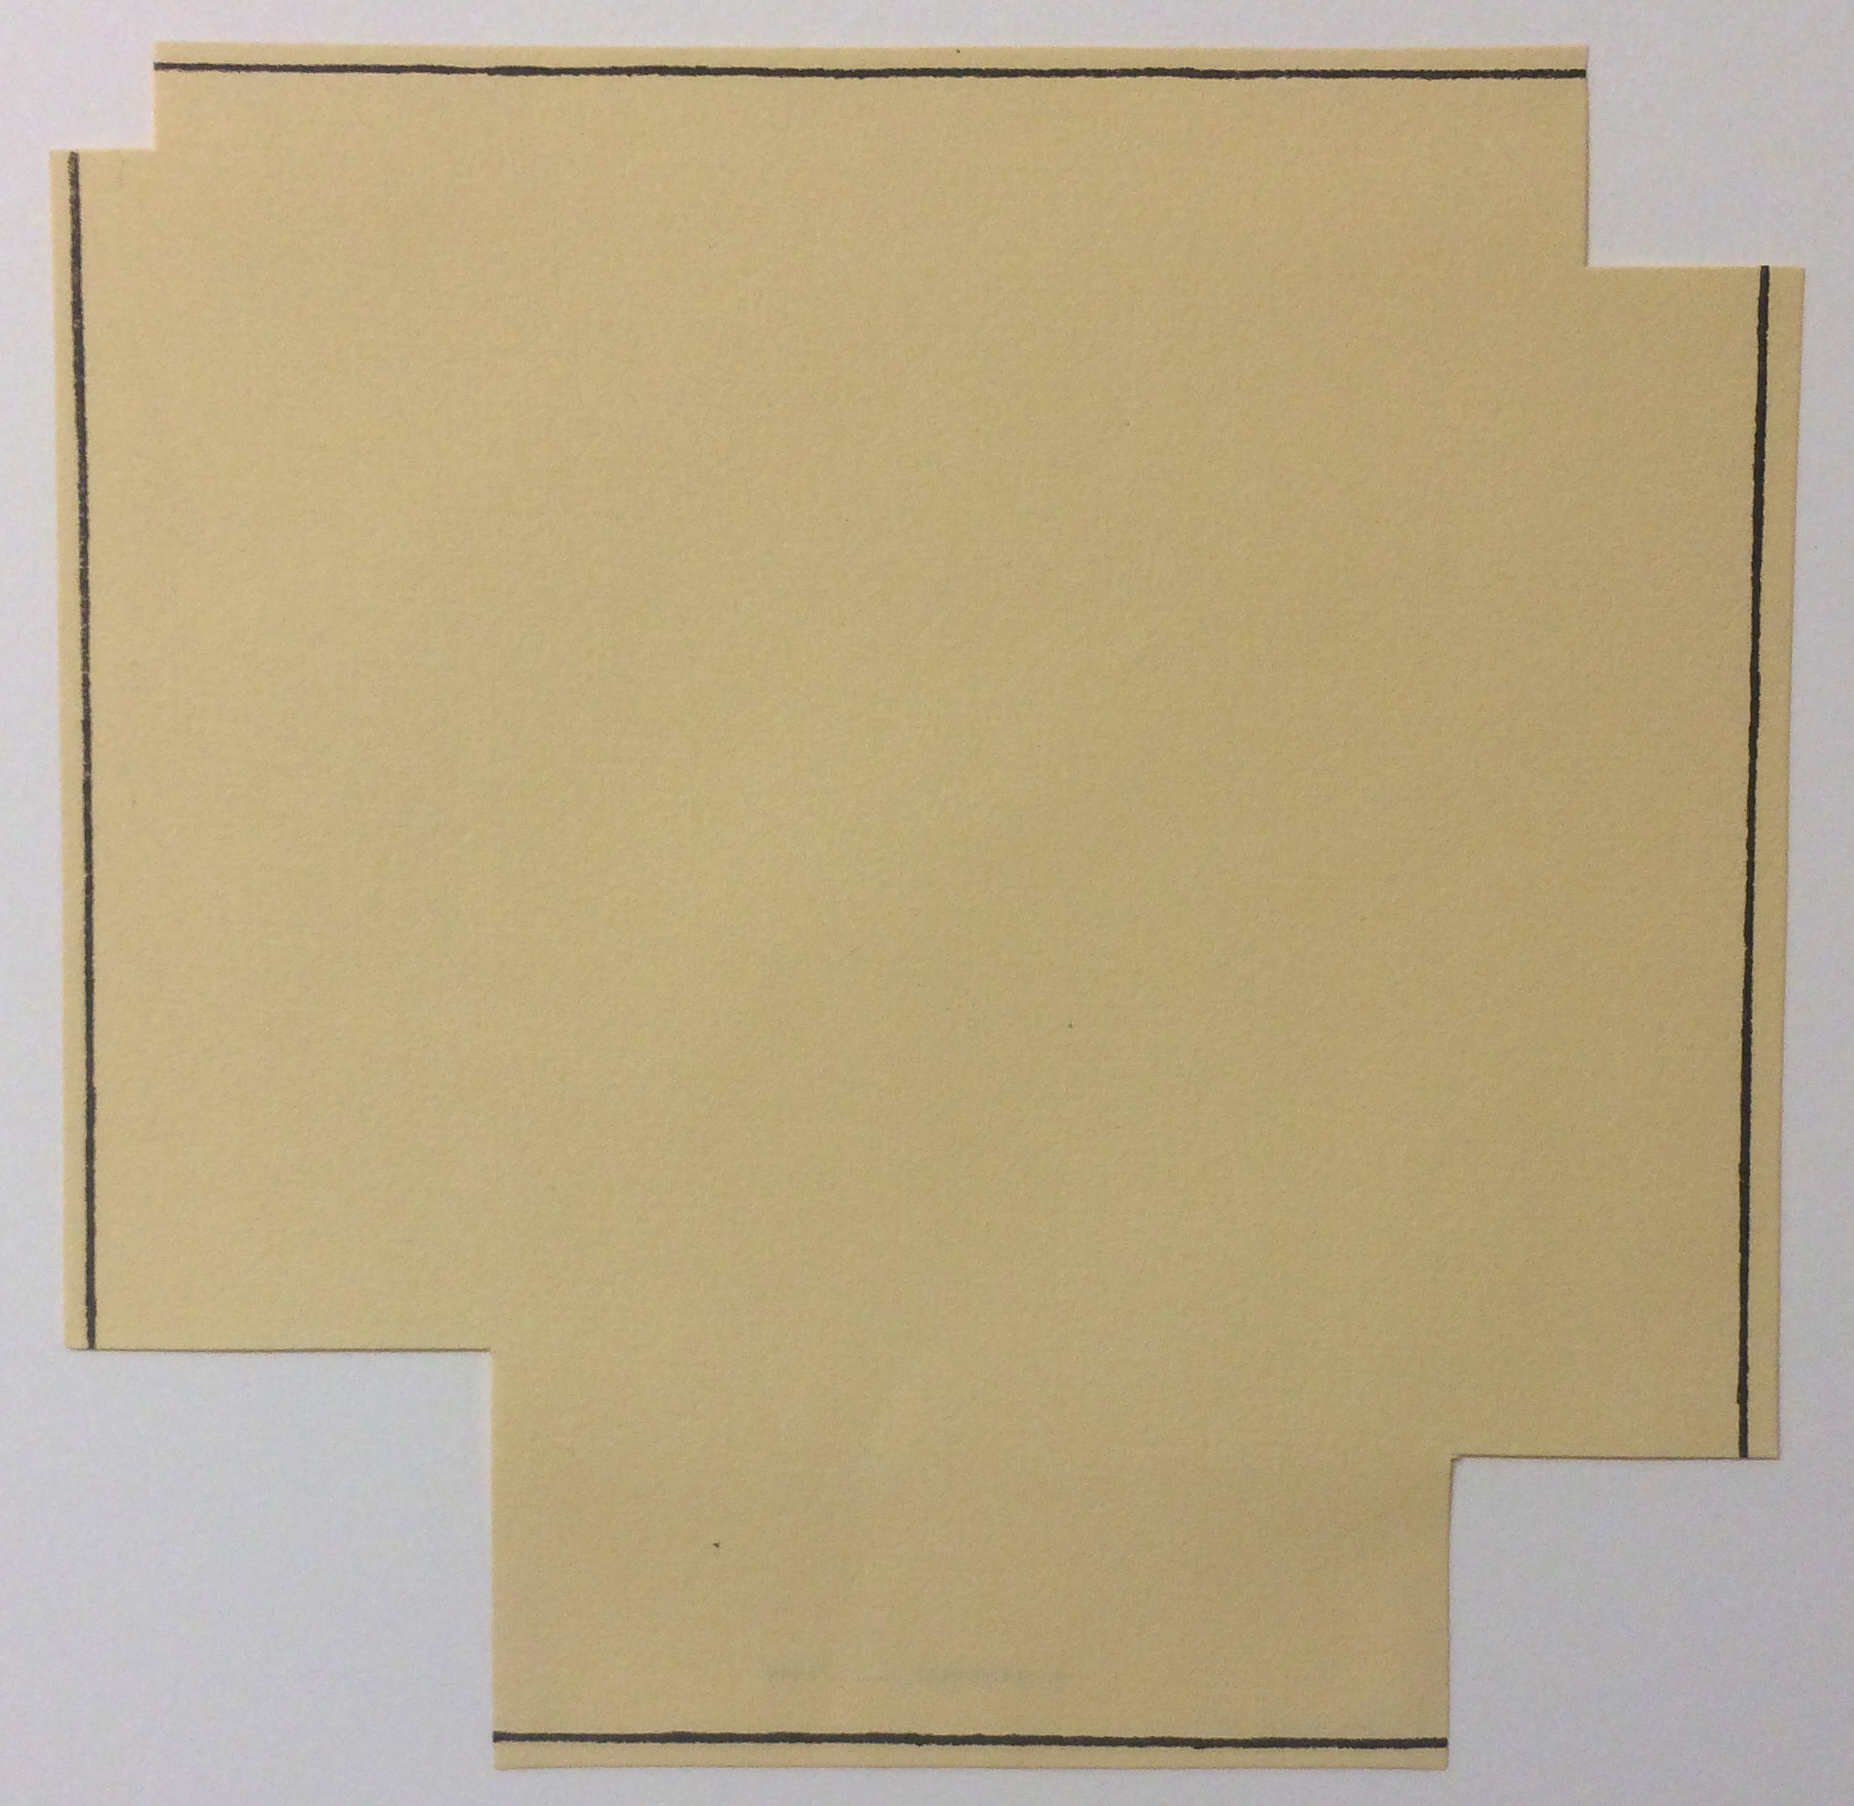 Robert Mangold (American, b. 1937), A Square with Four Squares Cut Away, from the Rubber Stamp Portfolio, 1976, published 1977. Rubber stamp print. Image and sheet: 8 × 8 in. (20.32 × 20.32 cm). Gift of Virginia M. and J. Thomas Maher III M1994.263.7. © Robert Mangold.